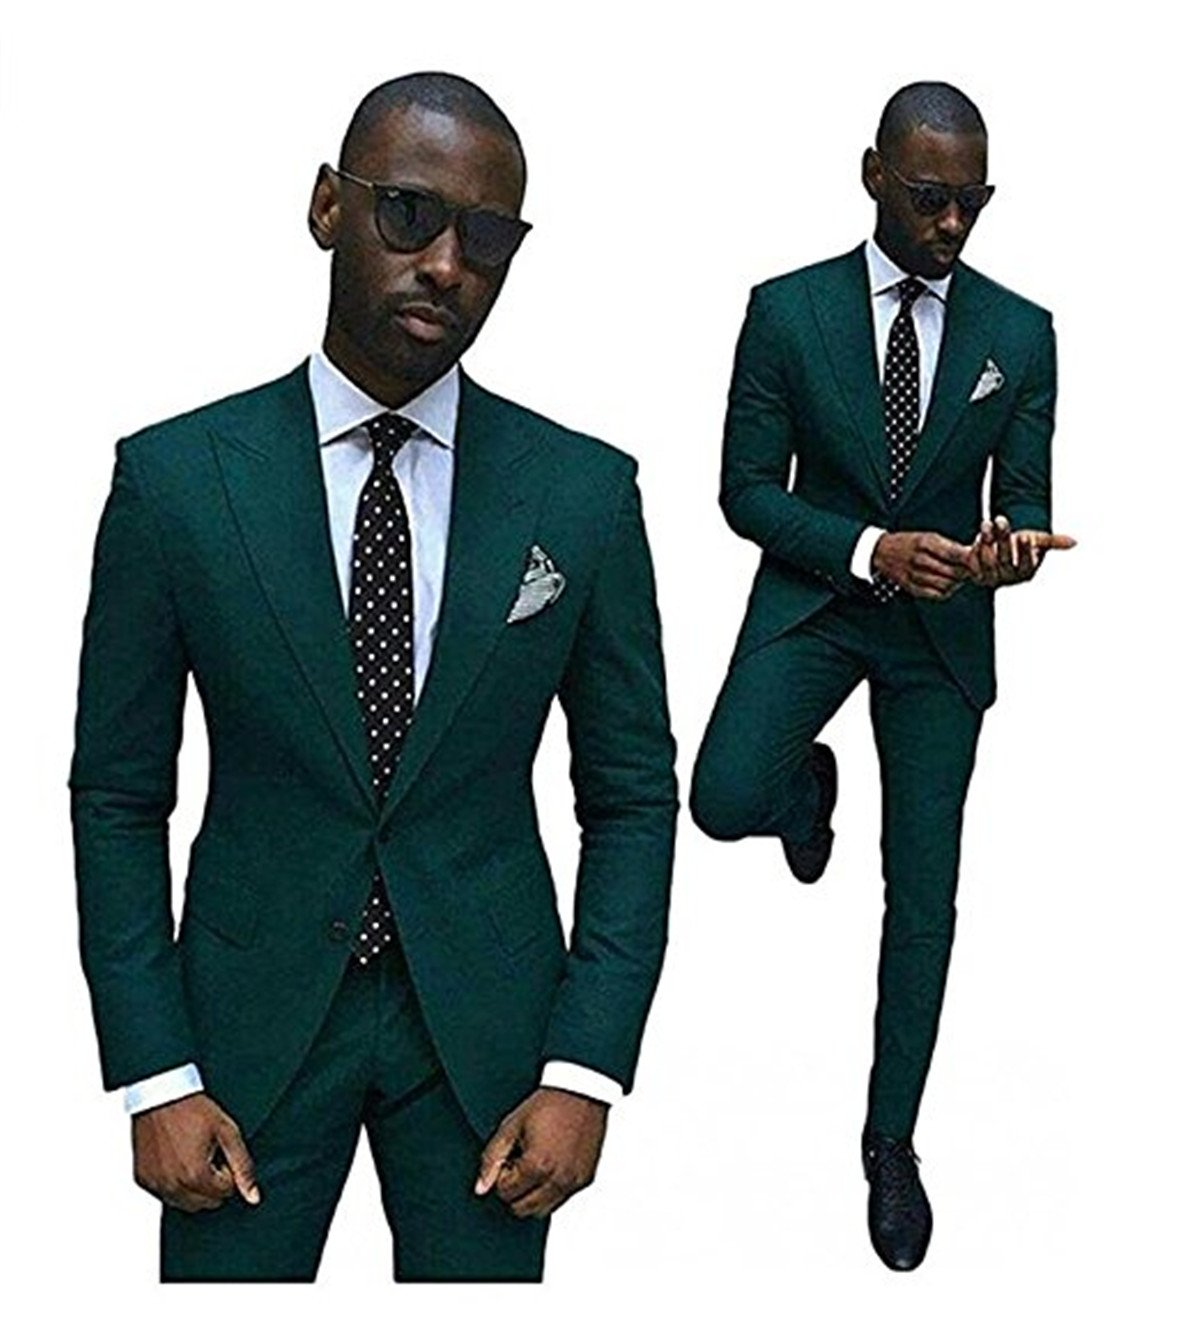 Wxili Men's Tuxedos 2 Piece Wedding Suits Noth Lapel Slim Fit 2018 New DG-M